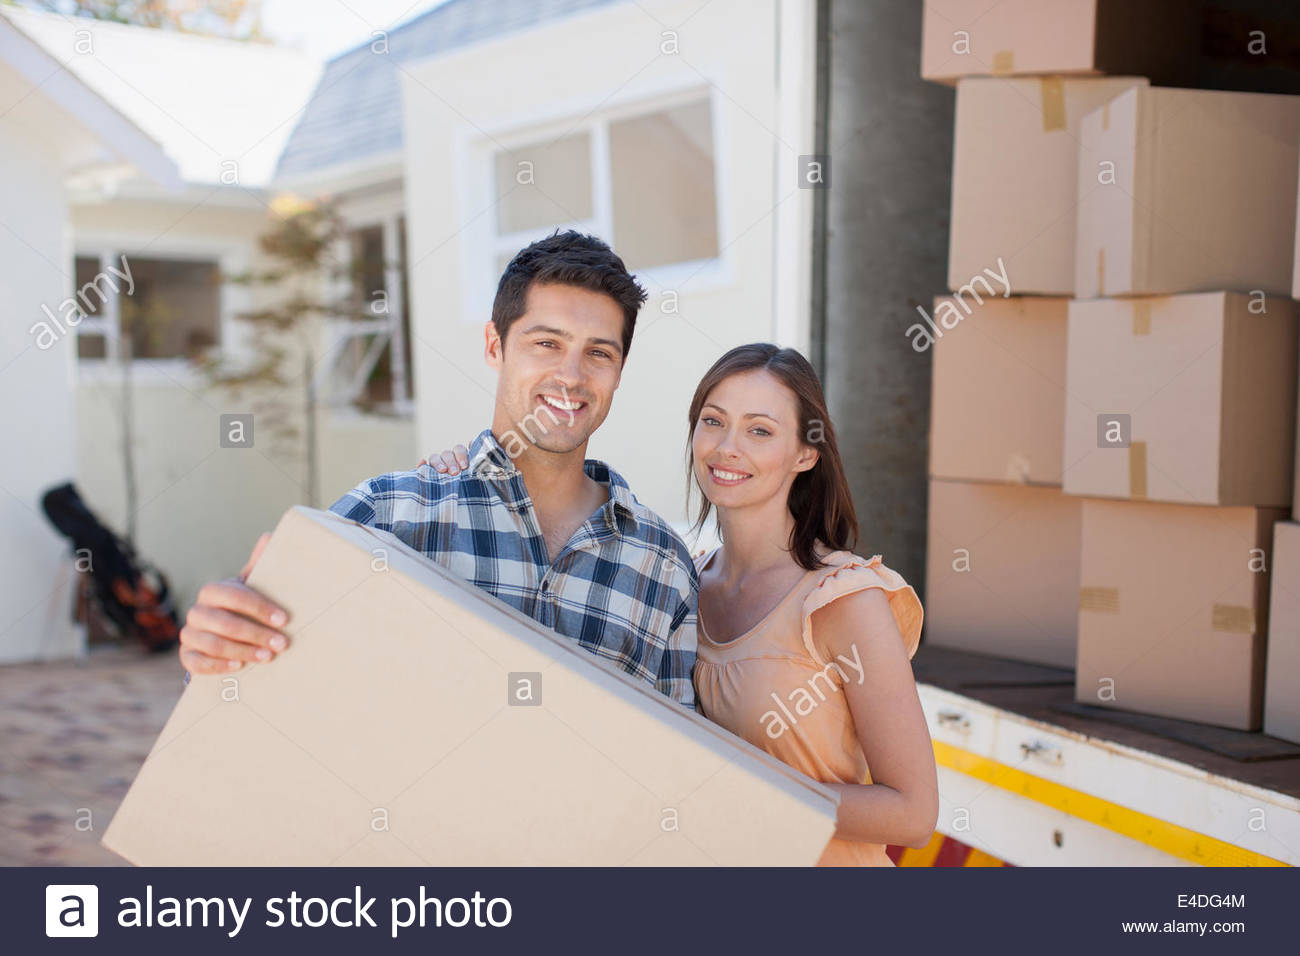 Couple carrying box from moving van - Stock Image